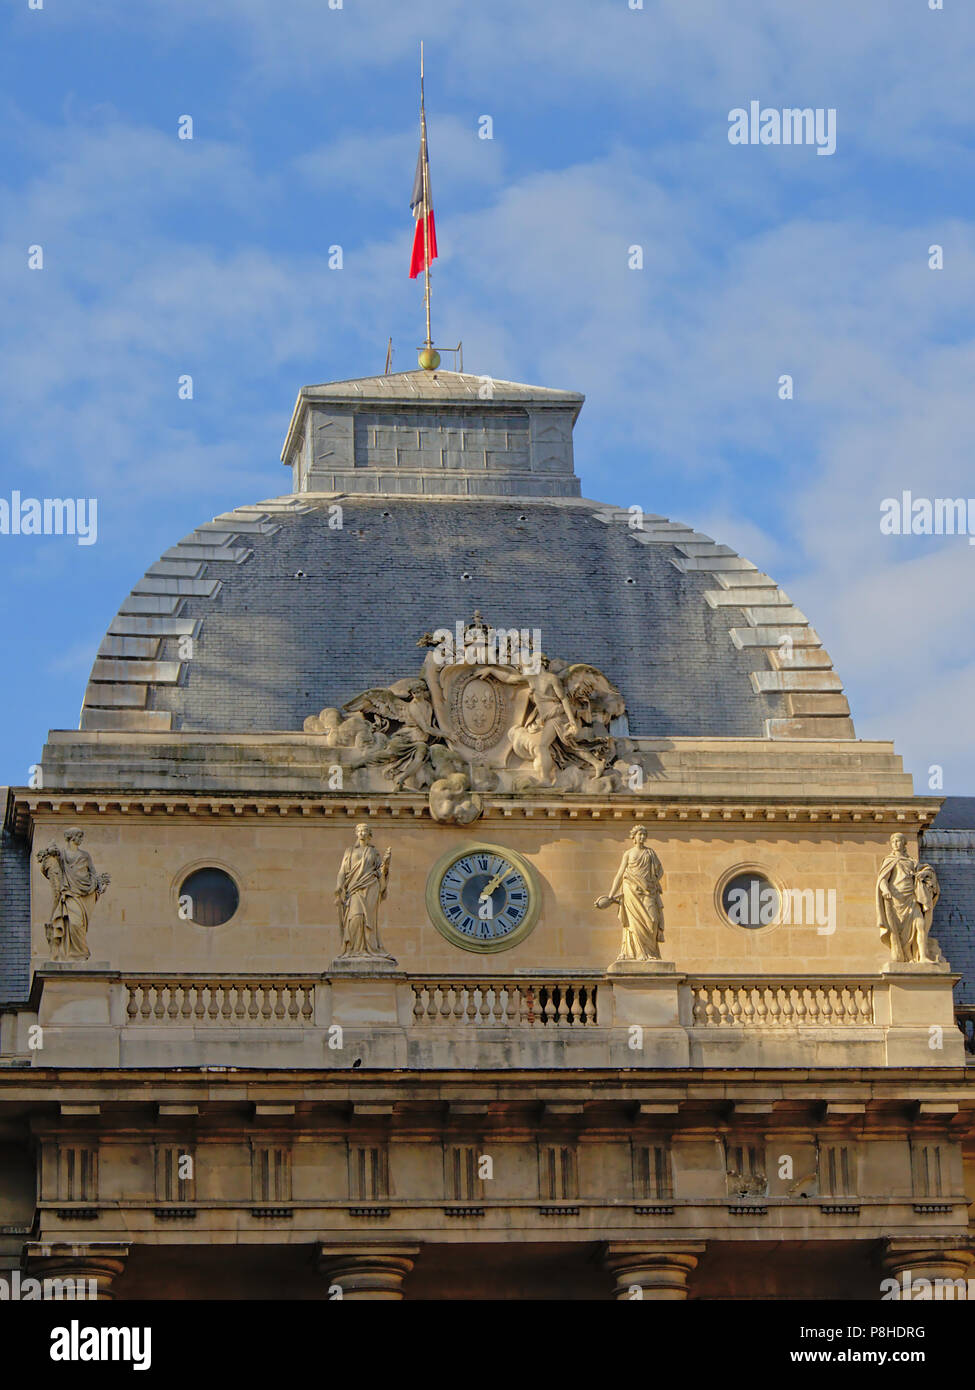 Detail of the Palace of Justice Paris, France: cupola with clock and stone sculptures - Stock Image